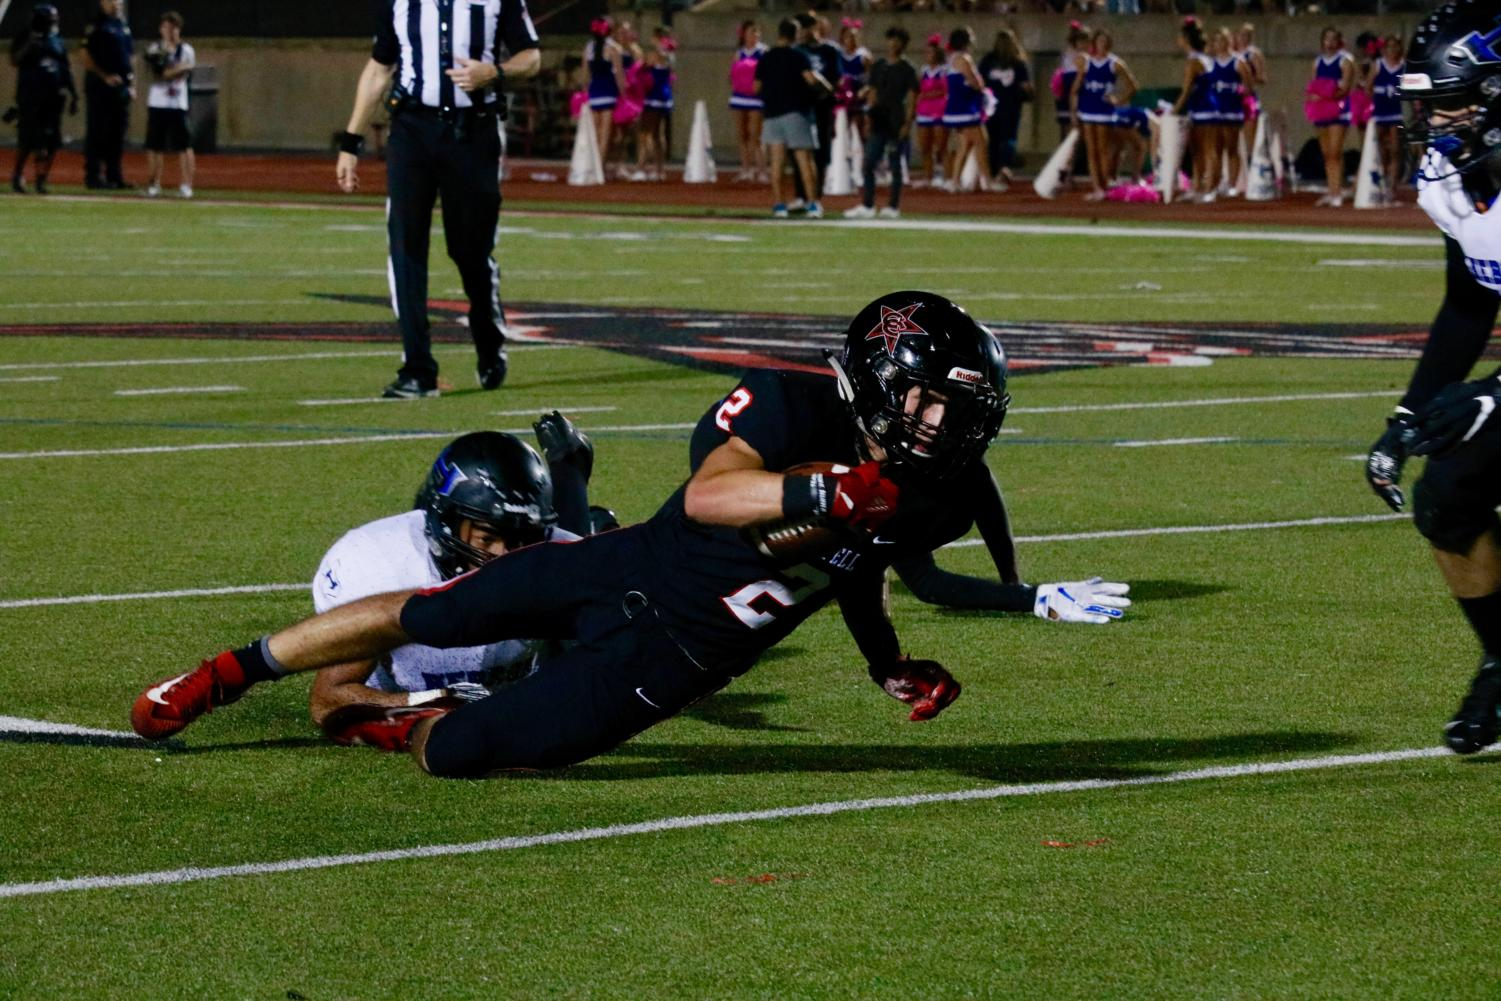 Coppell senior wide receiver Jan Rivera is tackled after a catch in the red zone. The Cowboys fell short in their first home District 6-6A game, 35-27, against Hebron on Friday night at Buddy Echols Field.